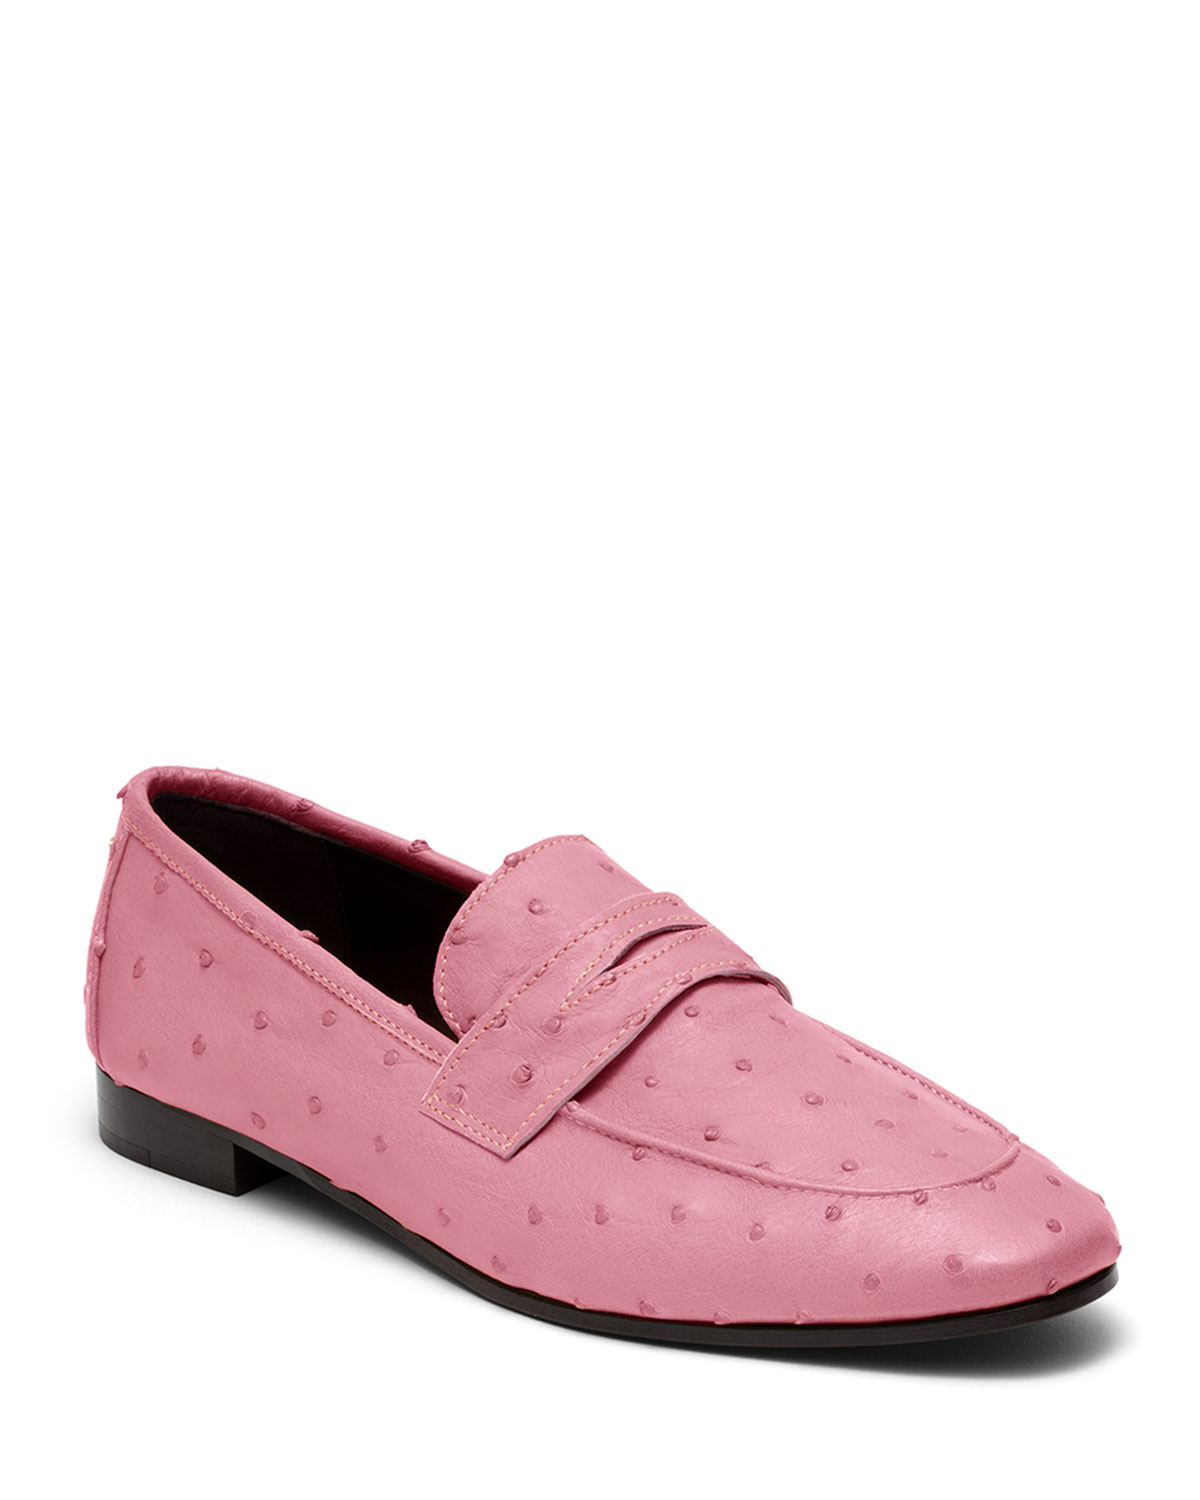 Flaneur Ostrich Slip-On Flat Loafers, Pink